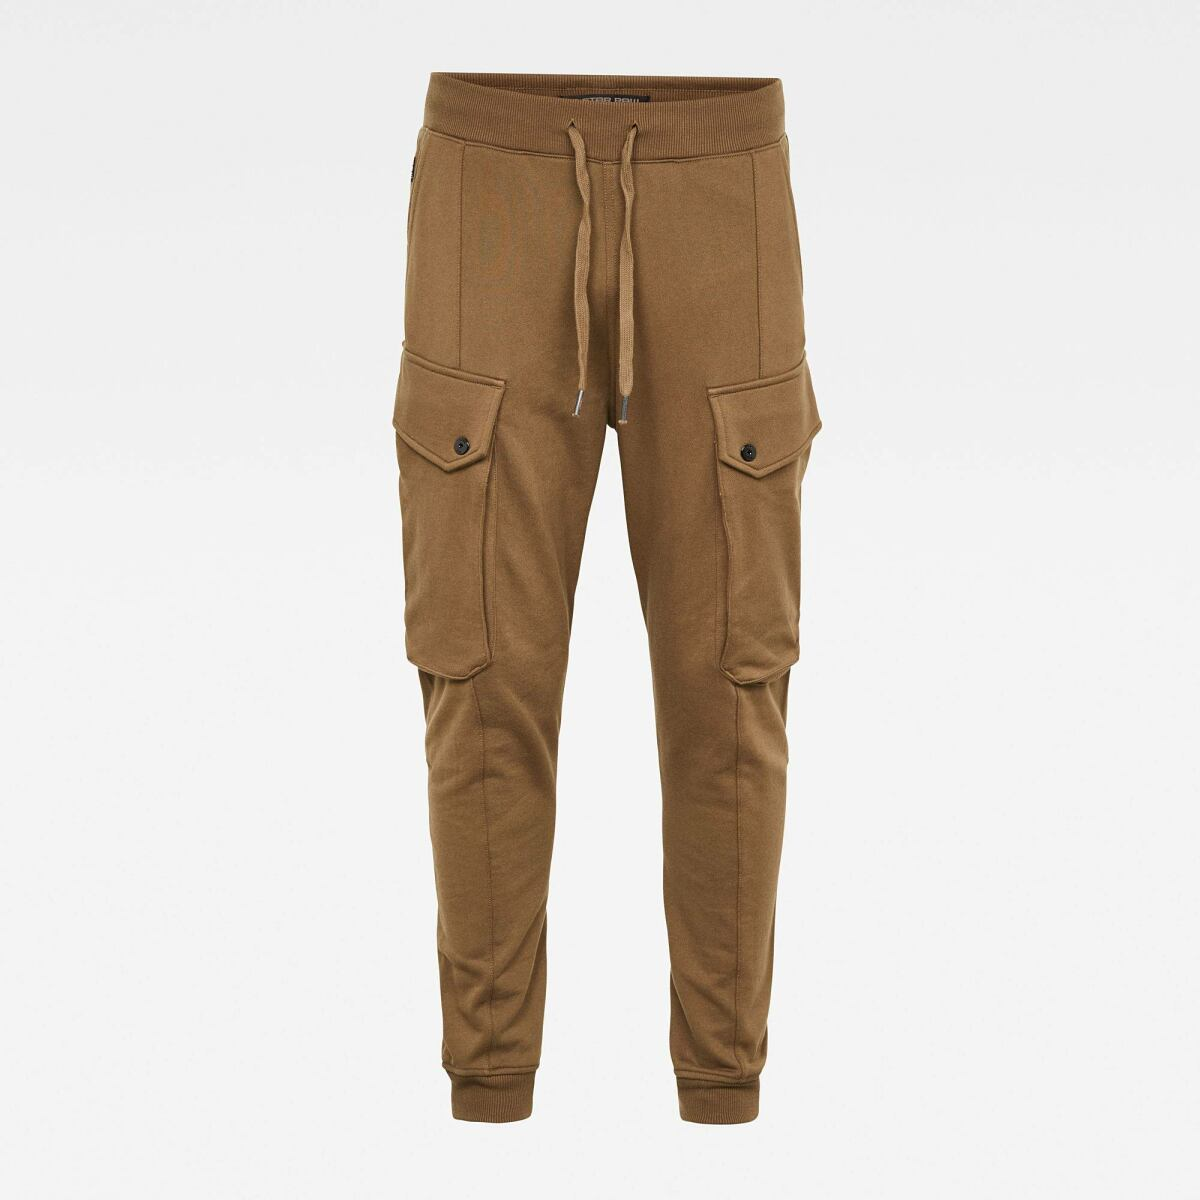 Green Man Pants Droner Cargo Sweatpants G-Star MEN